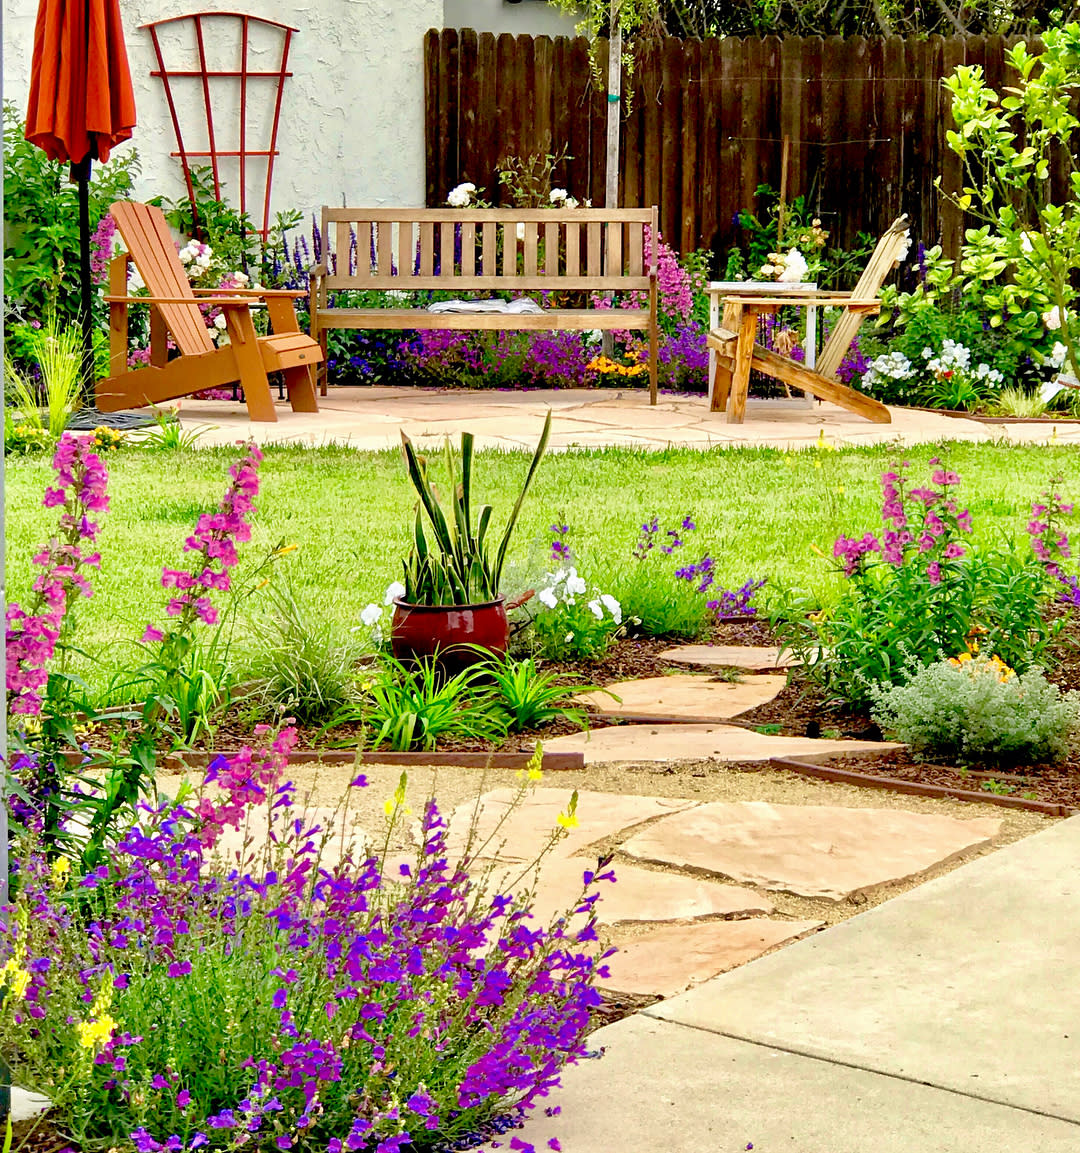 Gardening Backyard Landscaping Ideas on a Budget -floral_palace